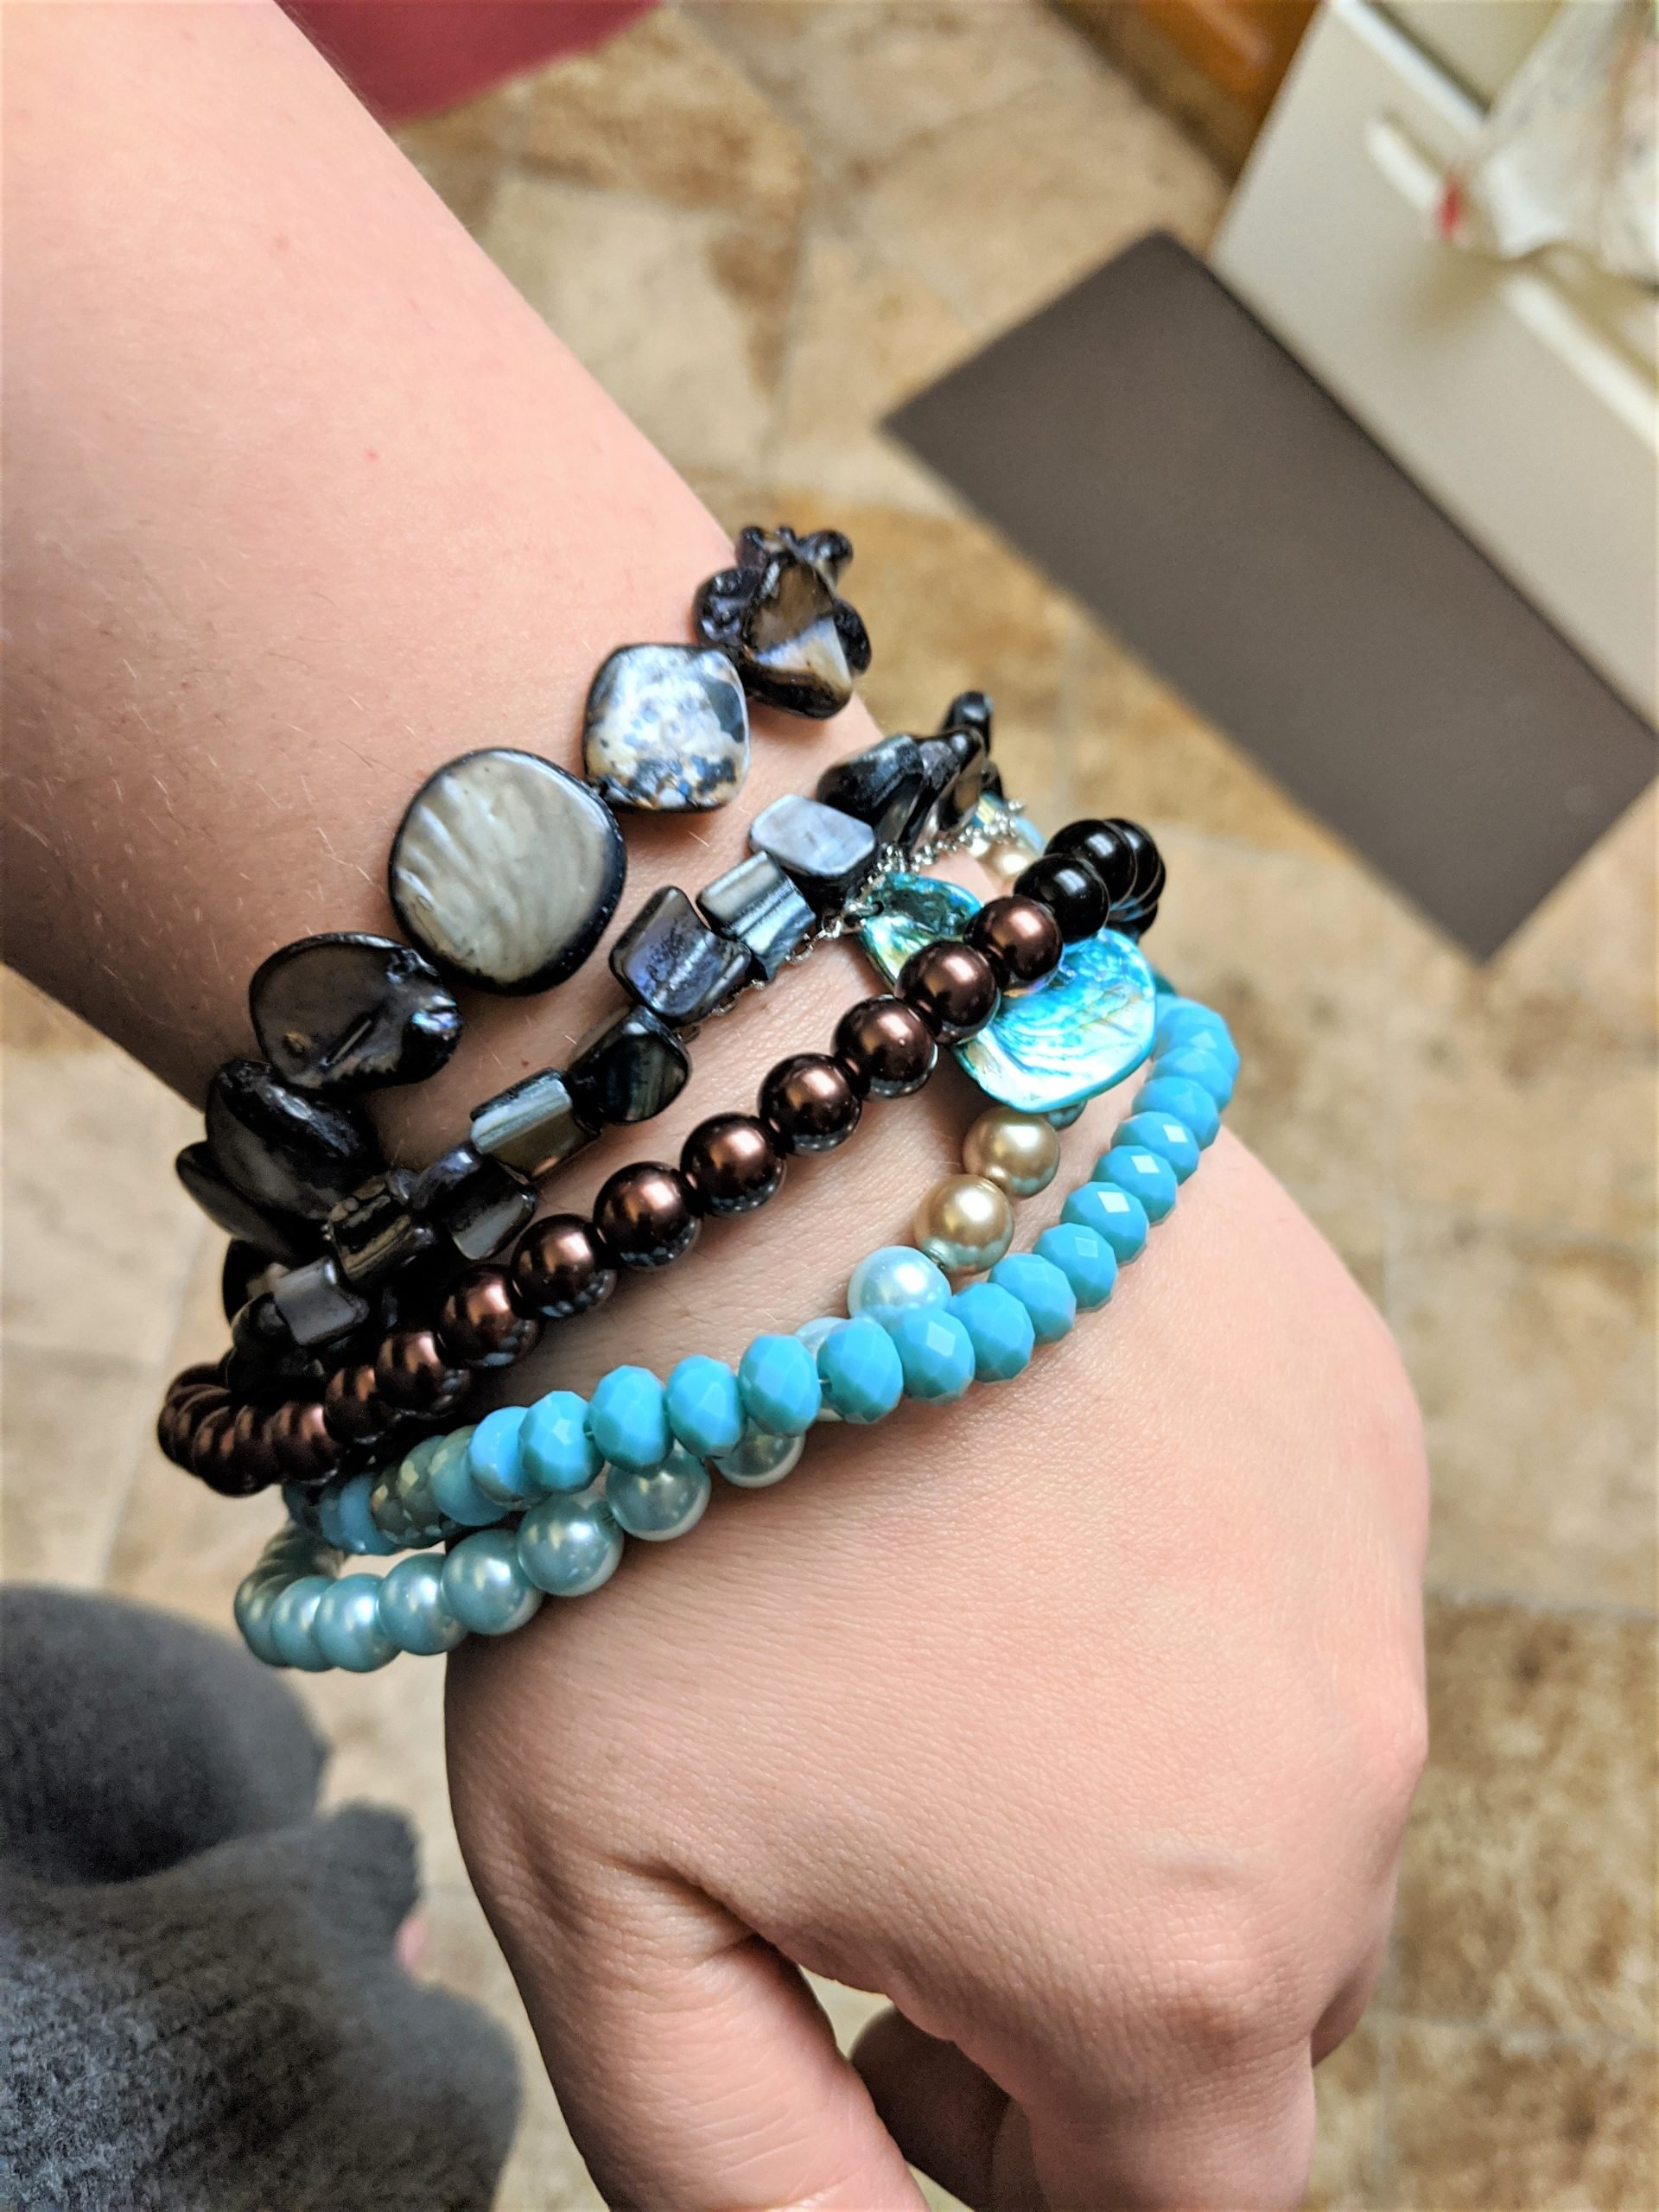 How to Make a Gorgeous Multi-Strand Bracelet Quickly